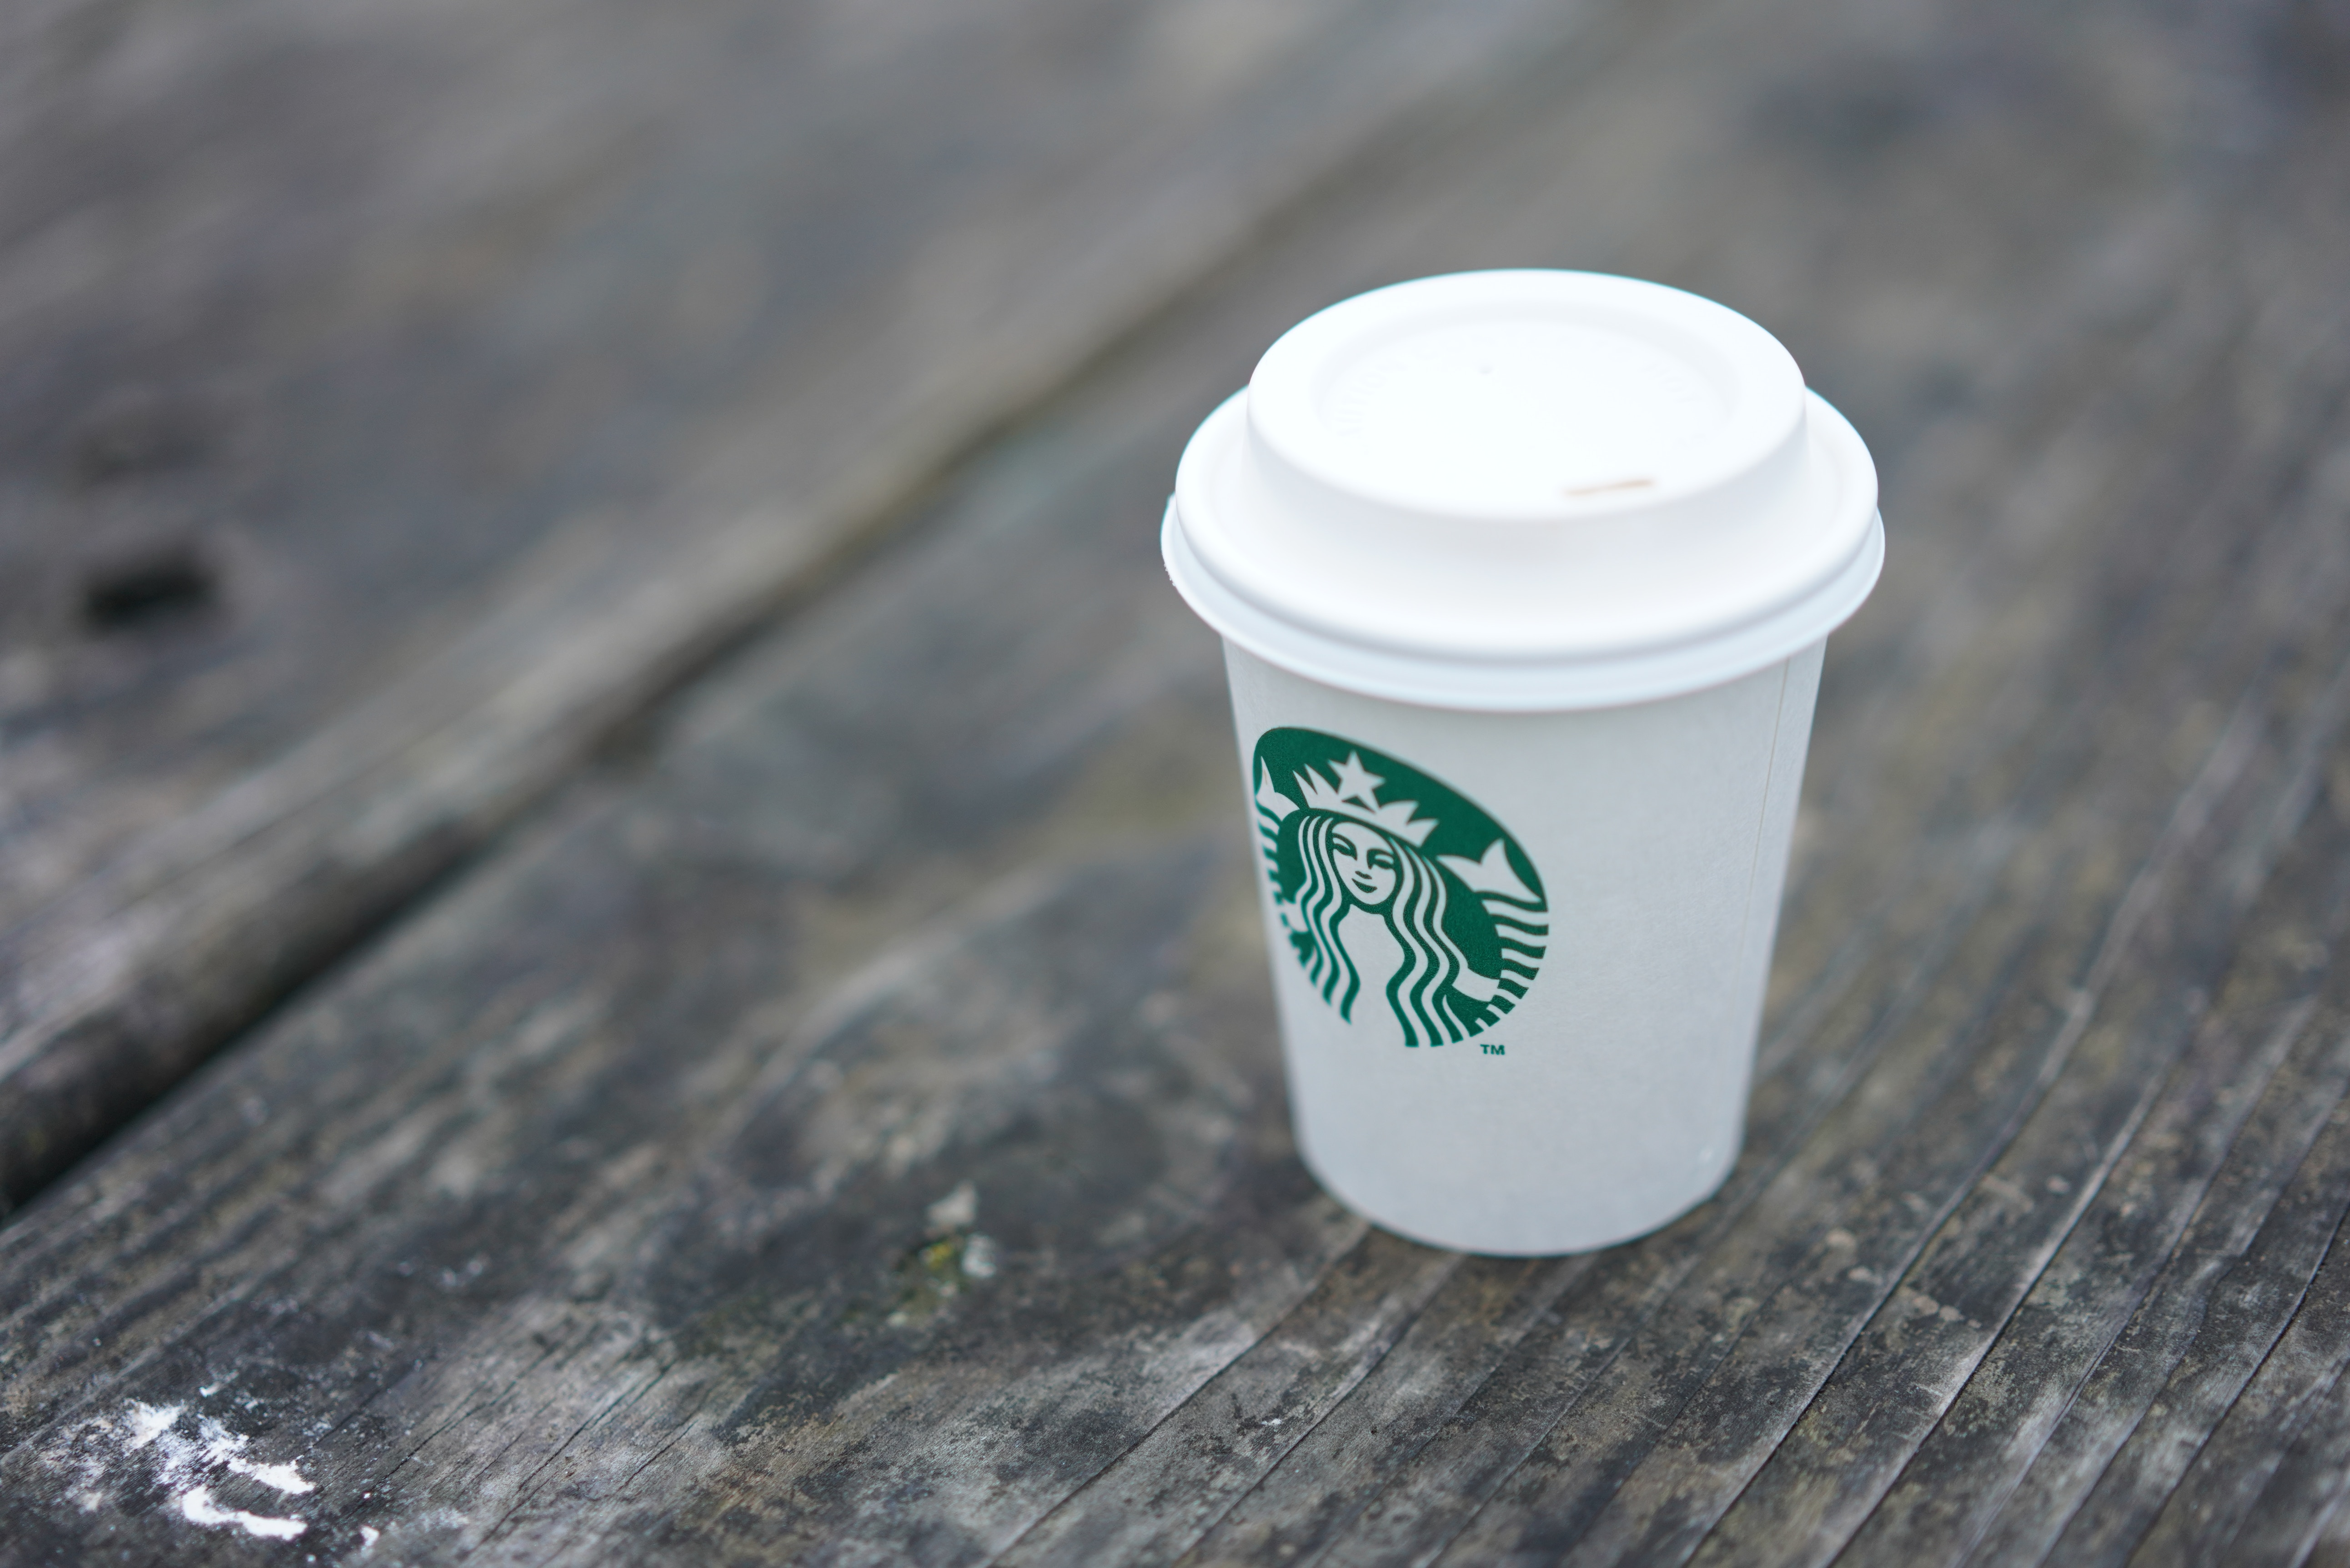 Gobelet Expresso Starbucks To Go Strawless Starting This Fall Tettybetty